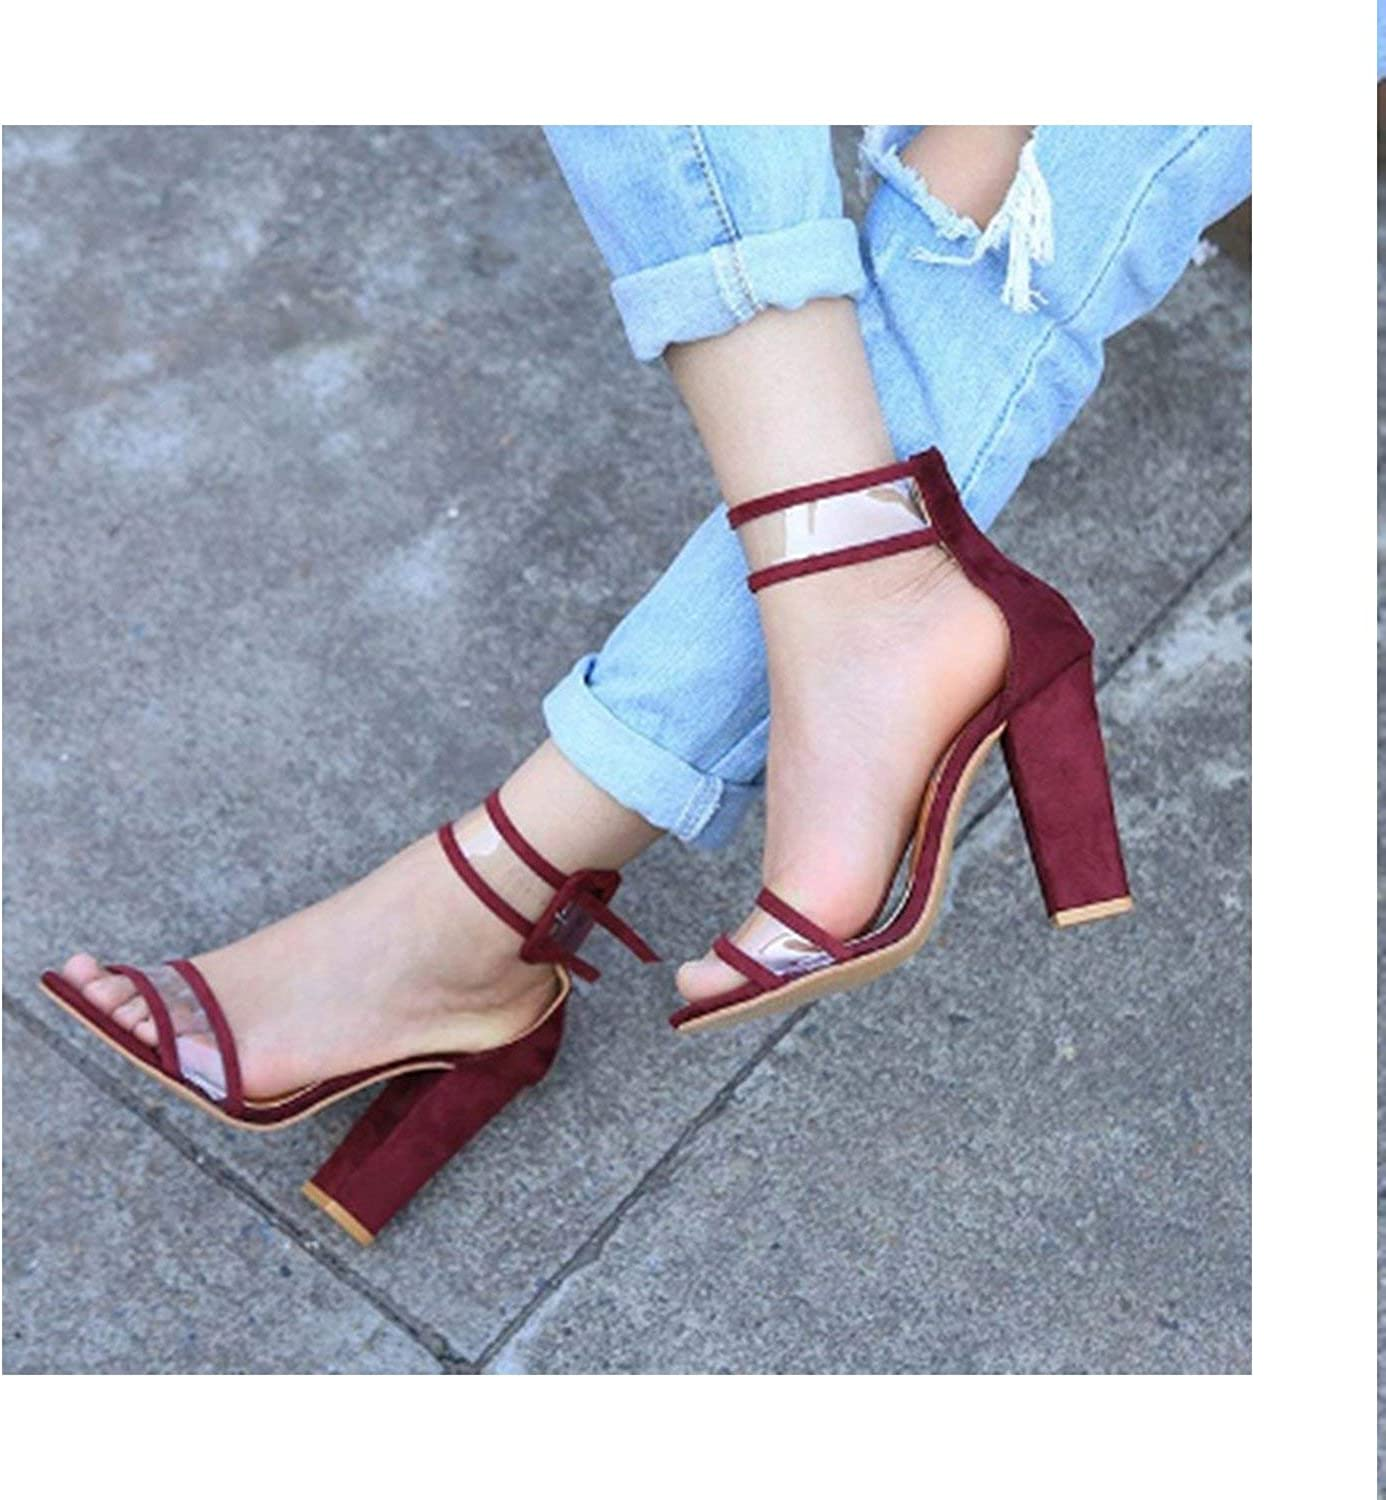 HANBINGPO New PVC Women Platform Sandals Super High Heels Waterproof Female Transparent Crystal Wedding shoes Sandalia Feminina Plus 43,Wine Red,8